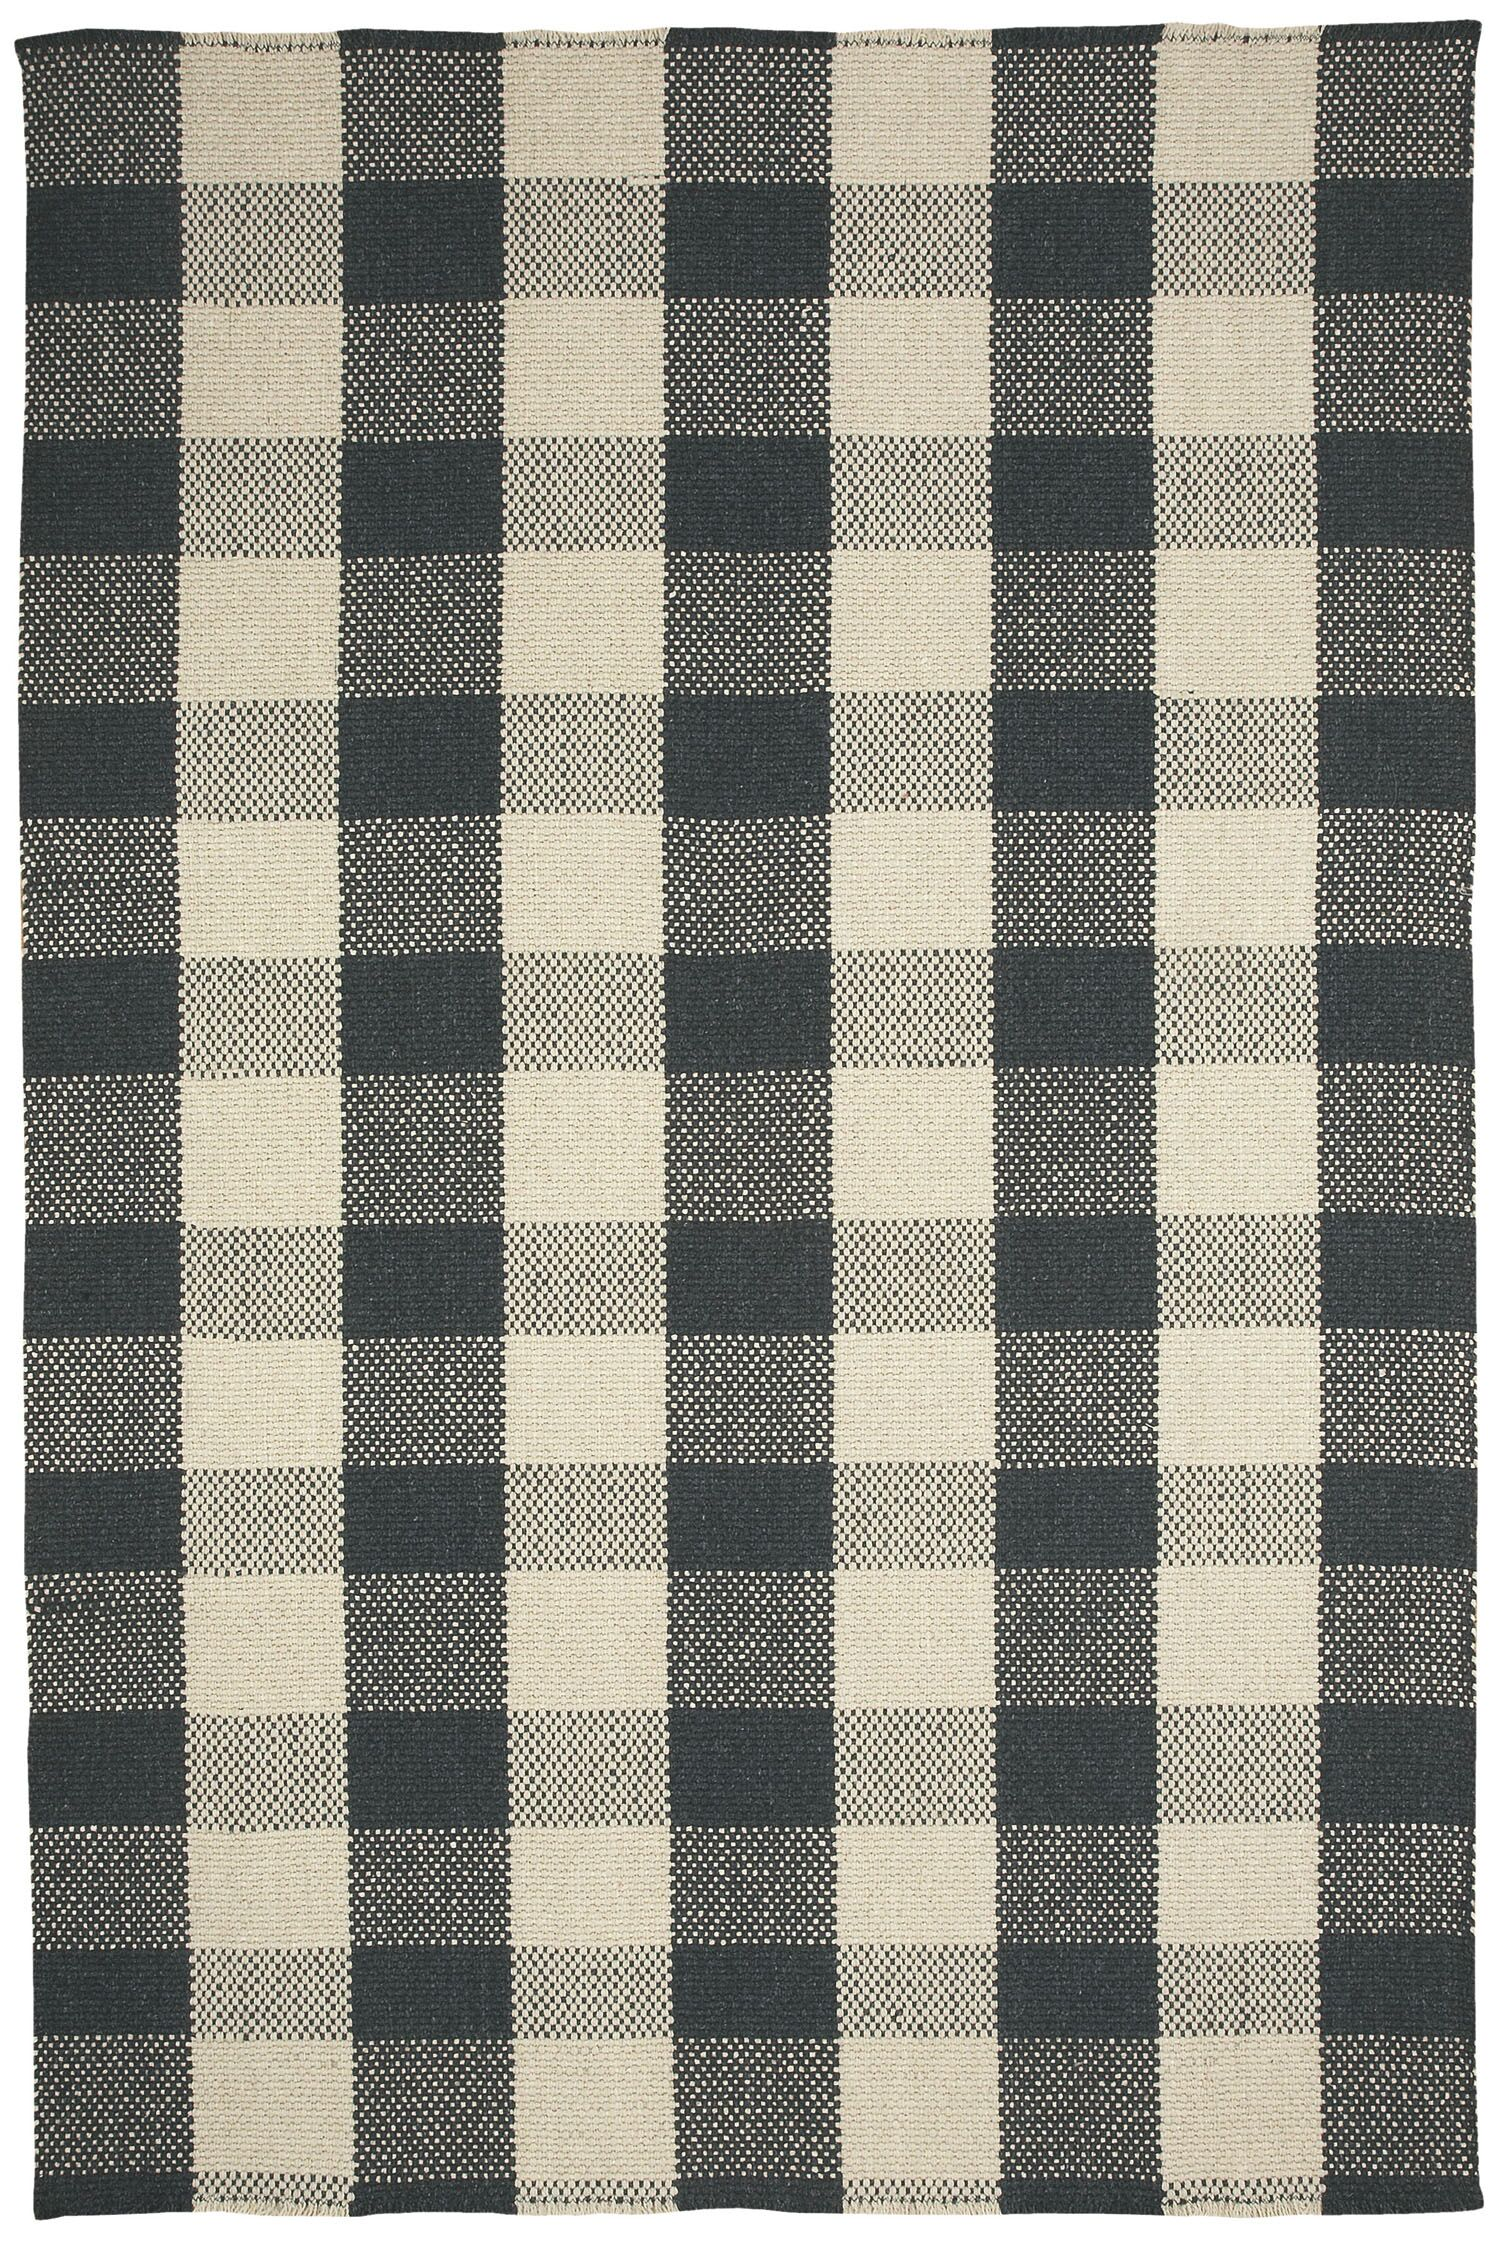 Madeleine Black/Cream Area Rug Rug Size: Rectangle 7' x 9'